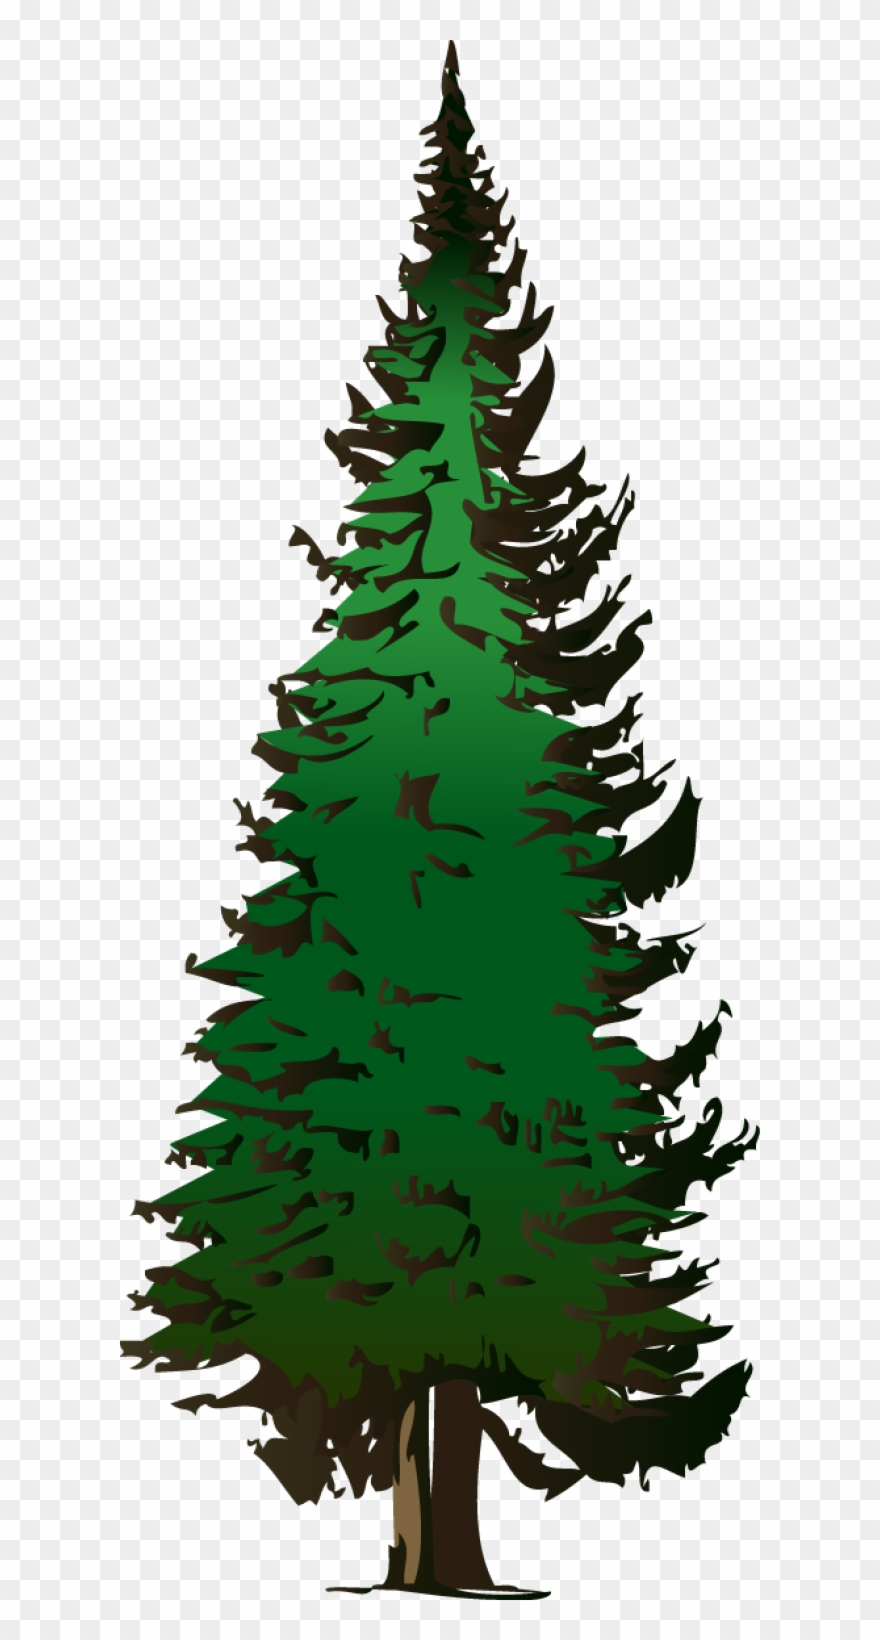 medium resolution of pine tree vector free download pine tree clipart png transparent png